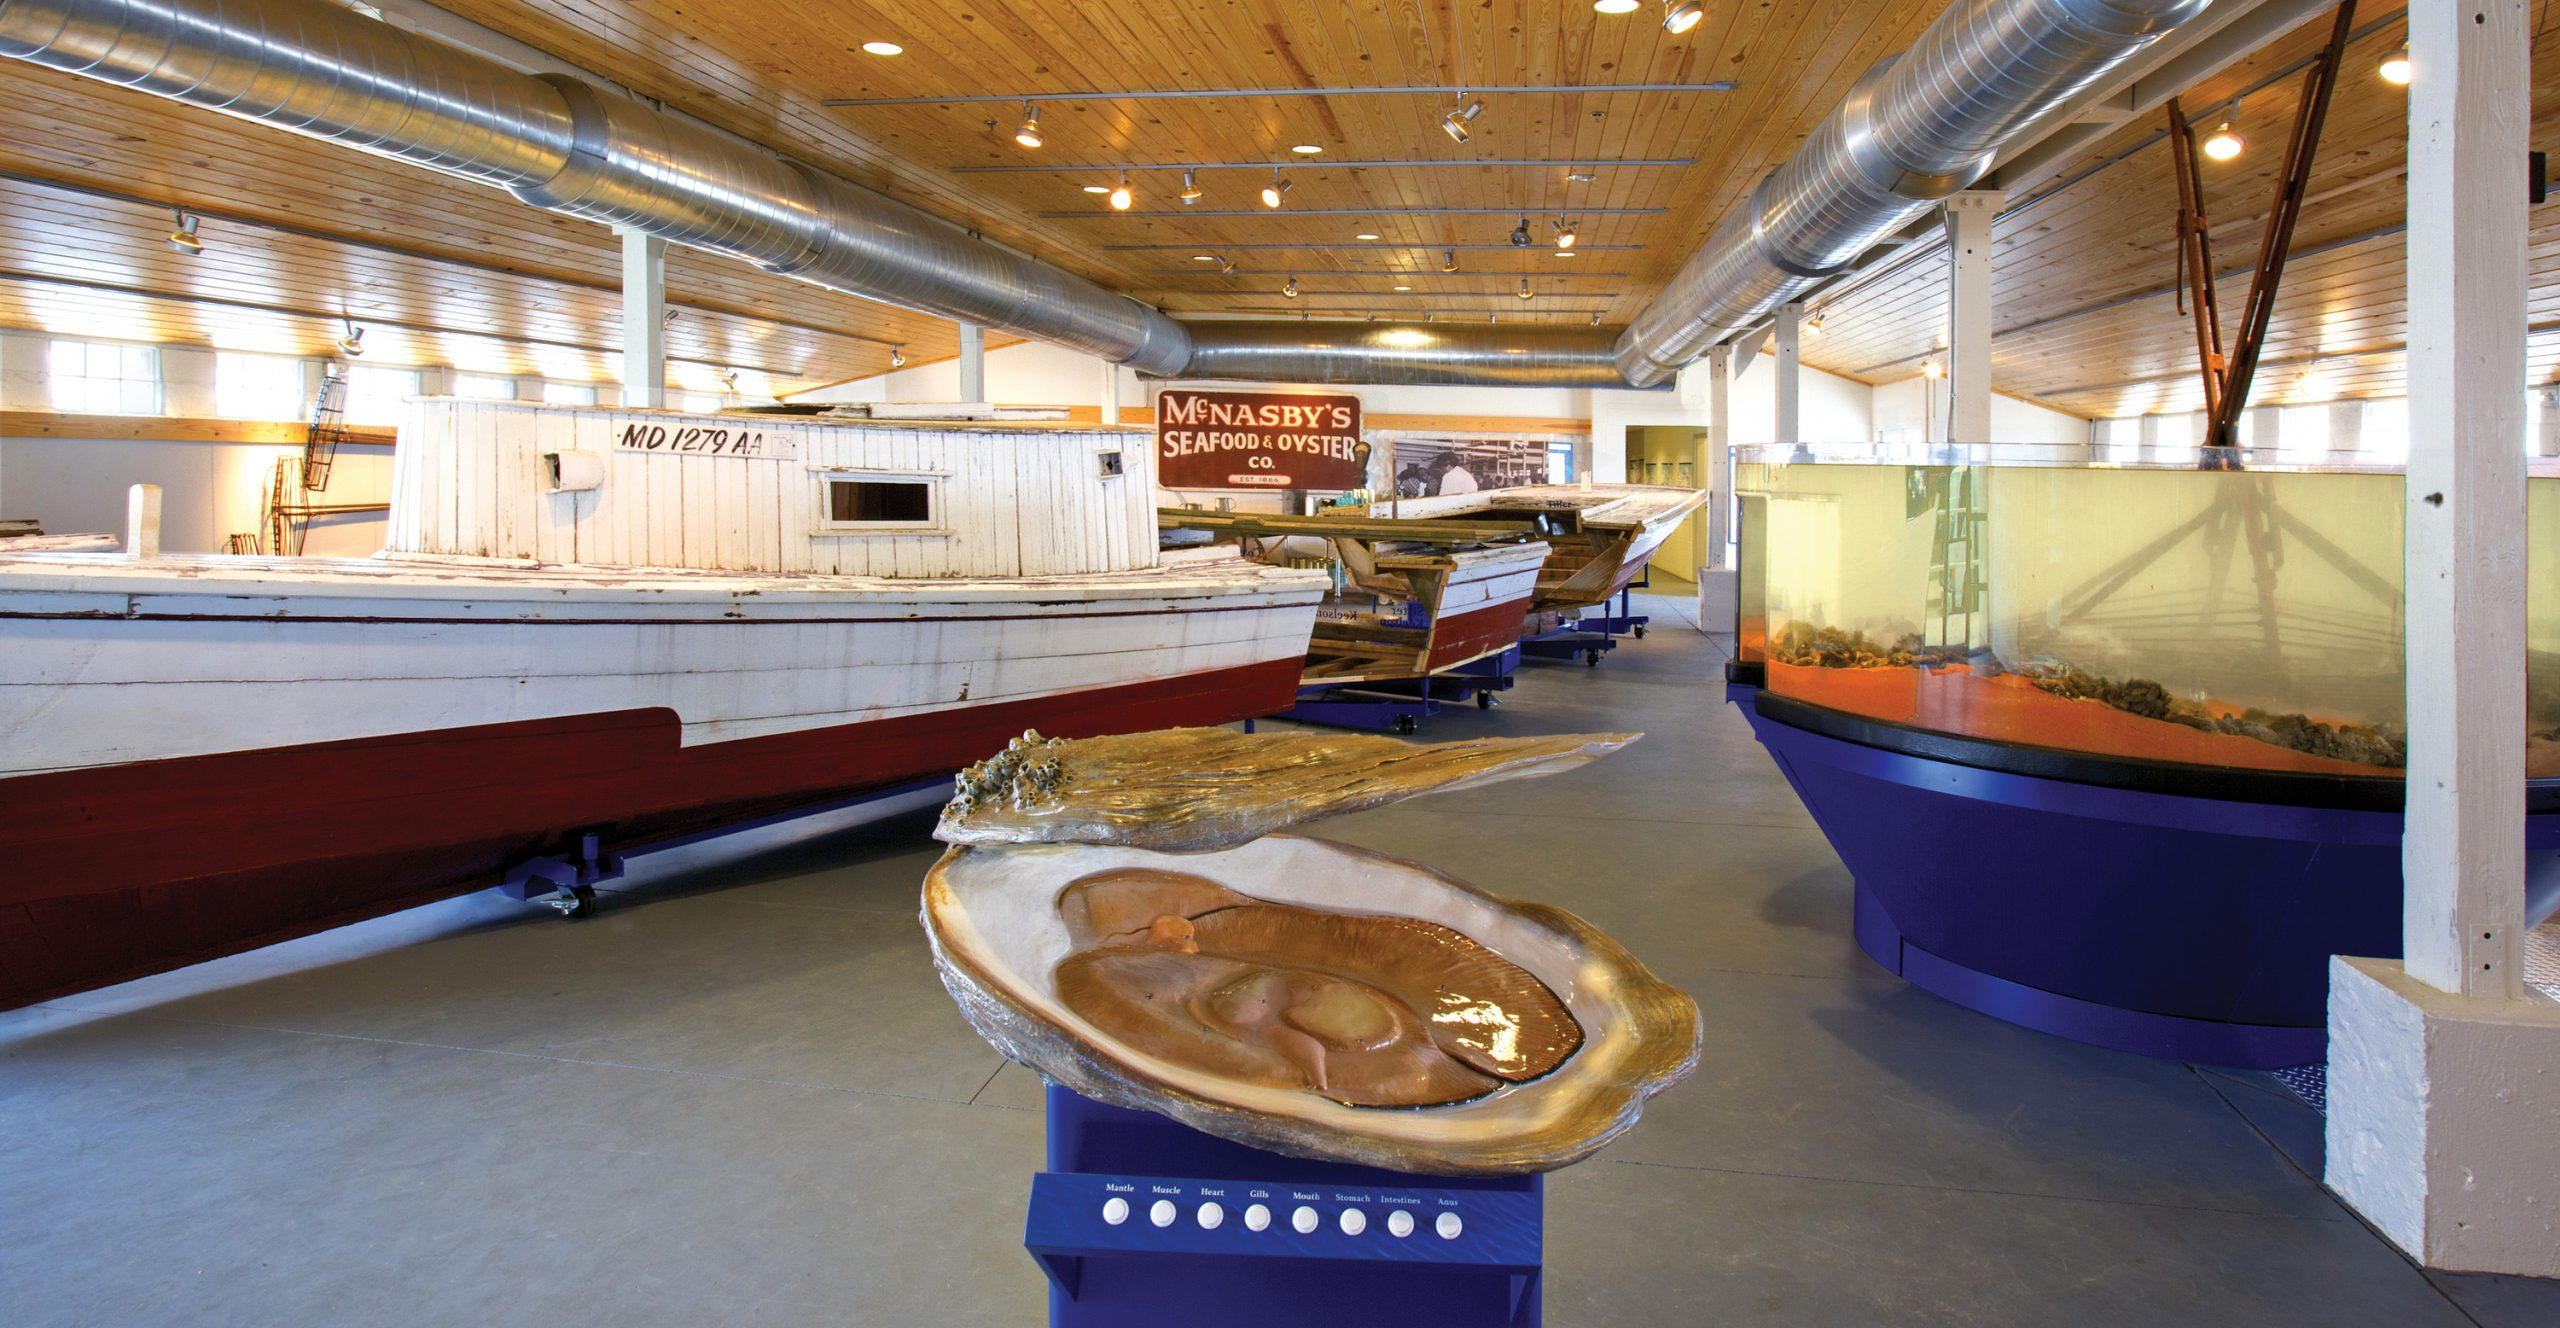 Project image 2 for Oysters on the Half Shell Exhibit, Annapolis Maritime Museum